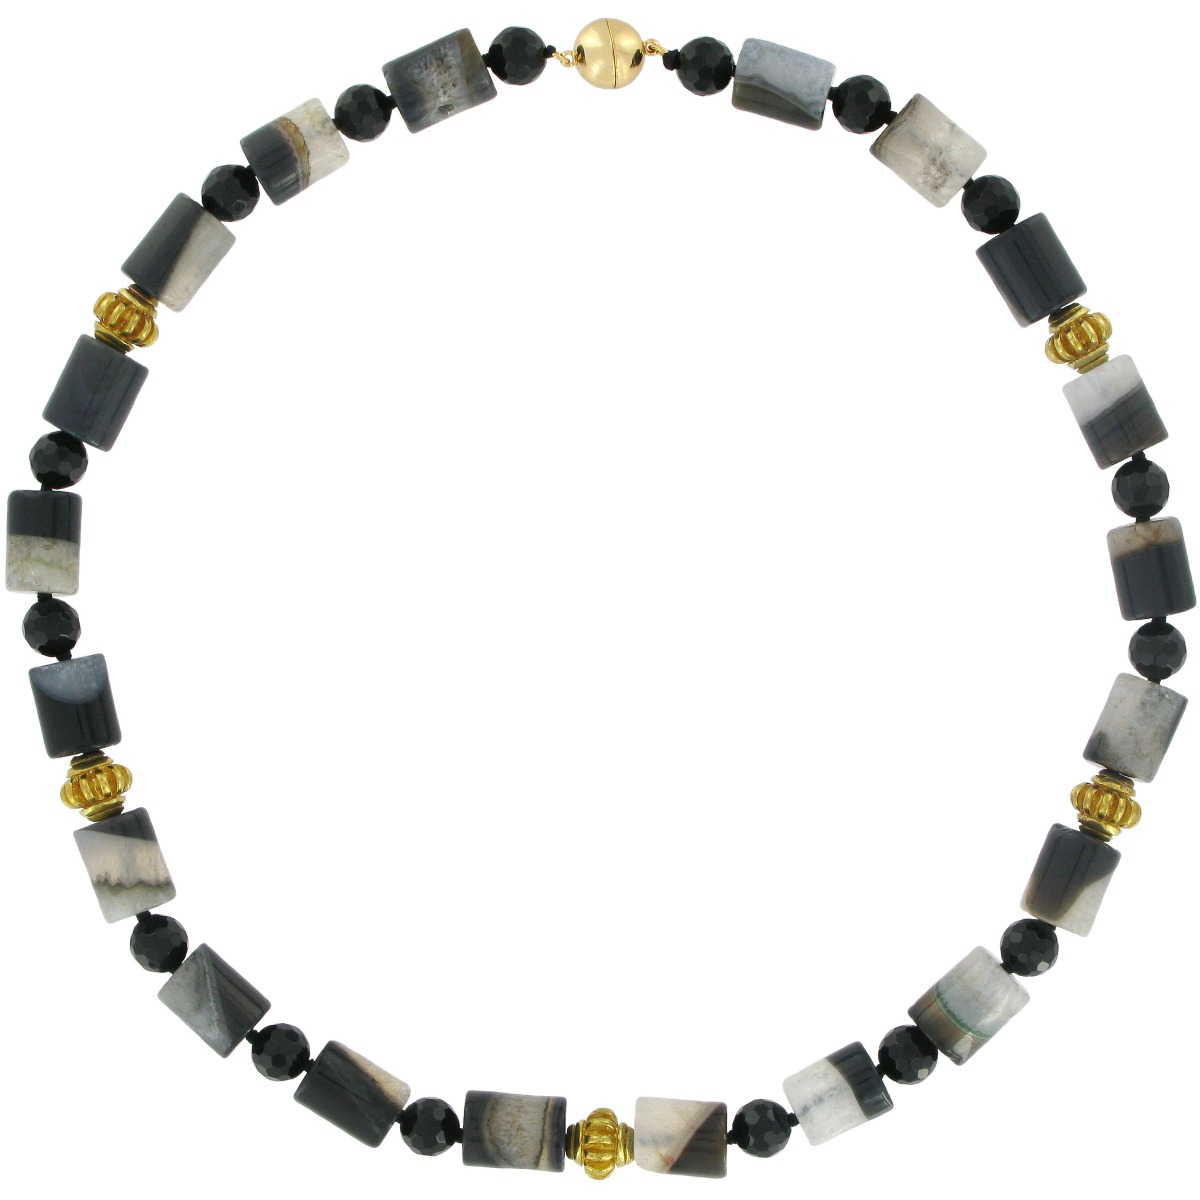 Onyx, agate and brass bead necklace